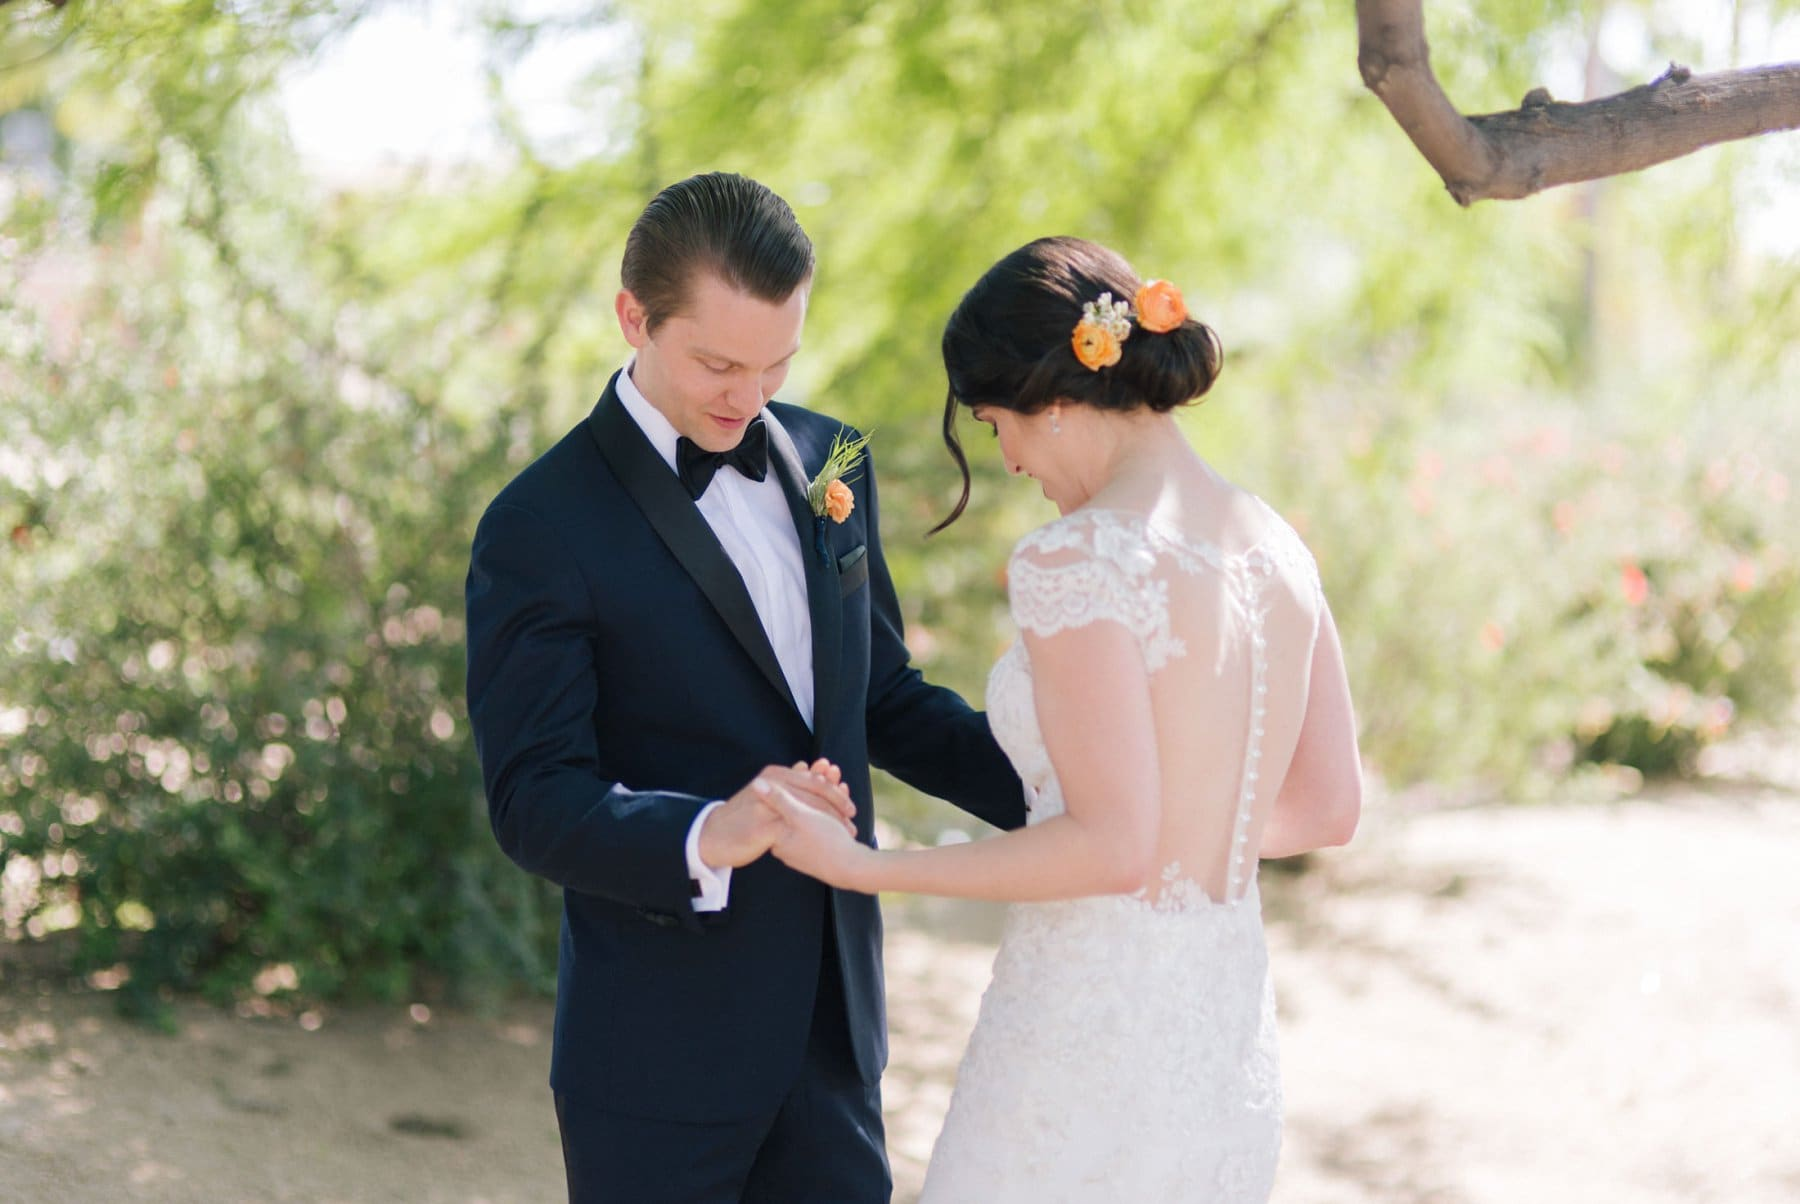 bride and groom first look classy wedding Scottsdale AZ